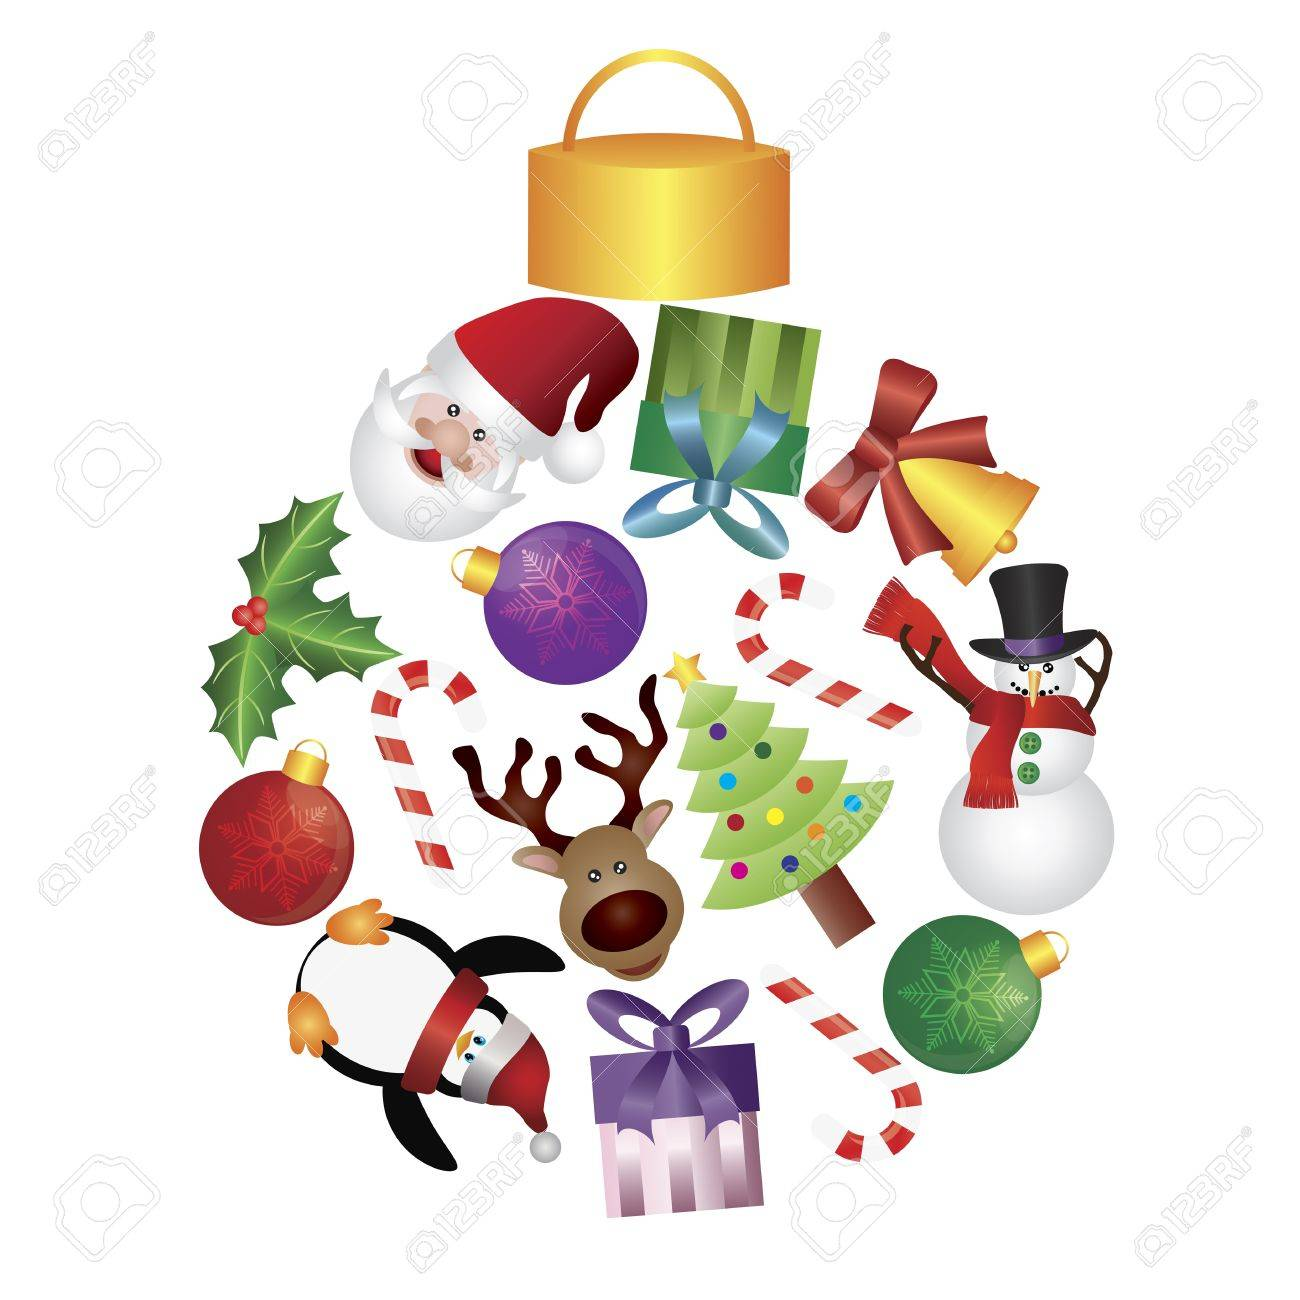 Christmas Tree Ornaments Collage With Santa Reindeer Penguin Royalty Free Cliparts Vectors And Stock Illustration Image 15873519